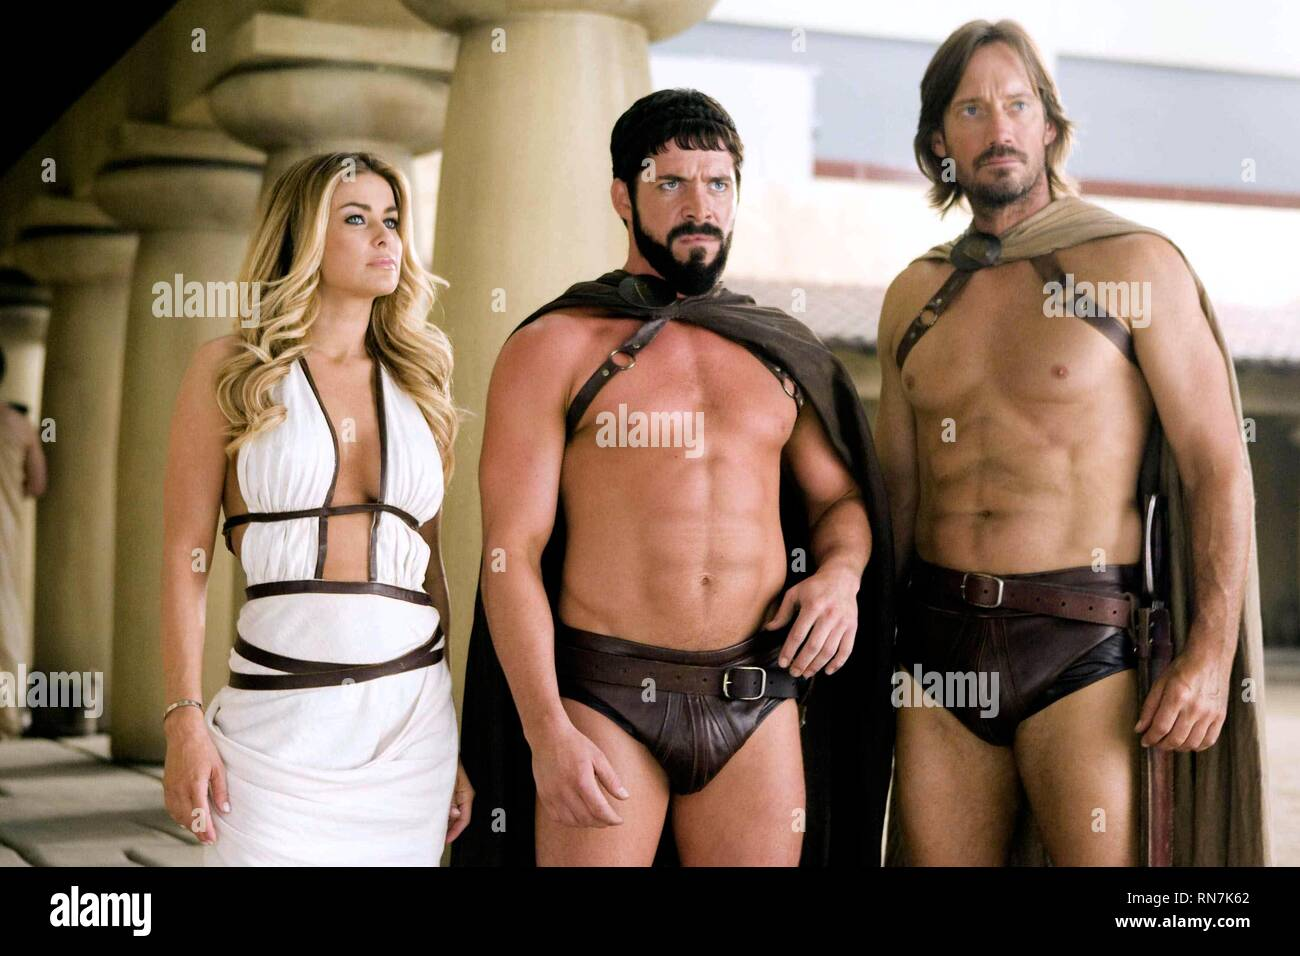 ELECTRA,MAGUIRE,SORBO, MEET THE SPARTANS, 2008 - Stock Image